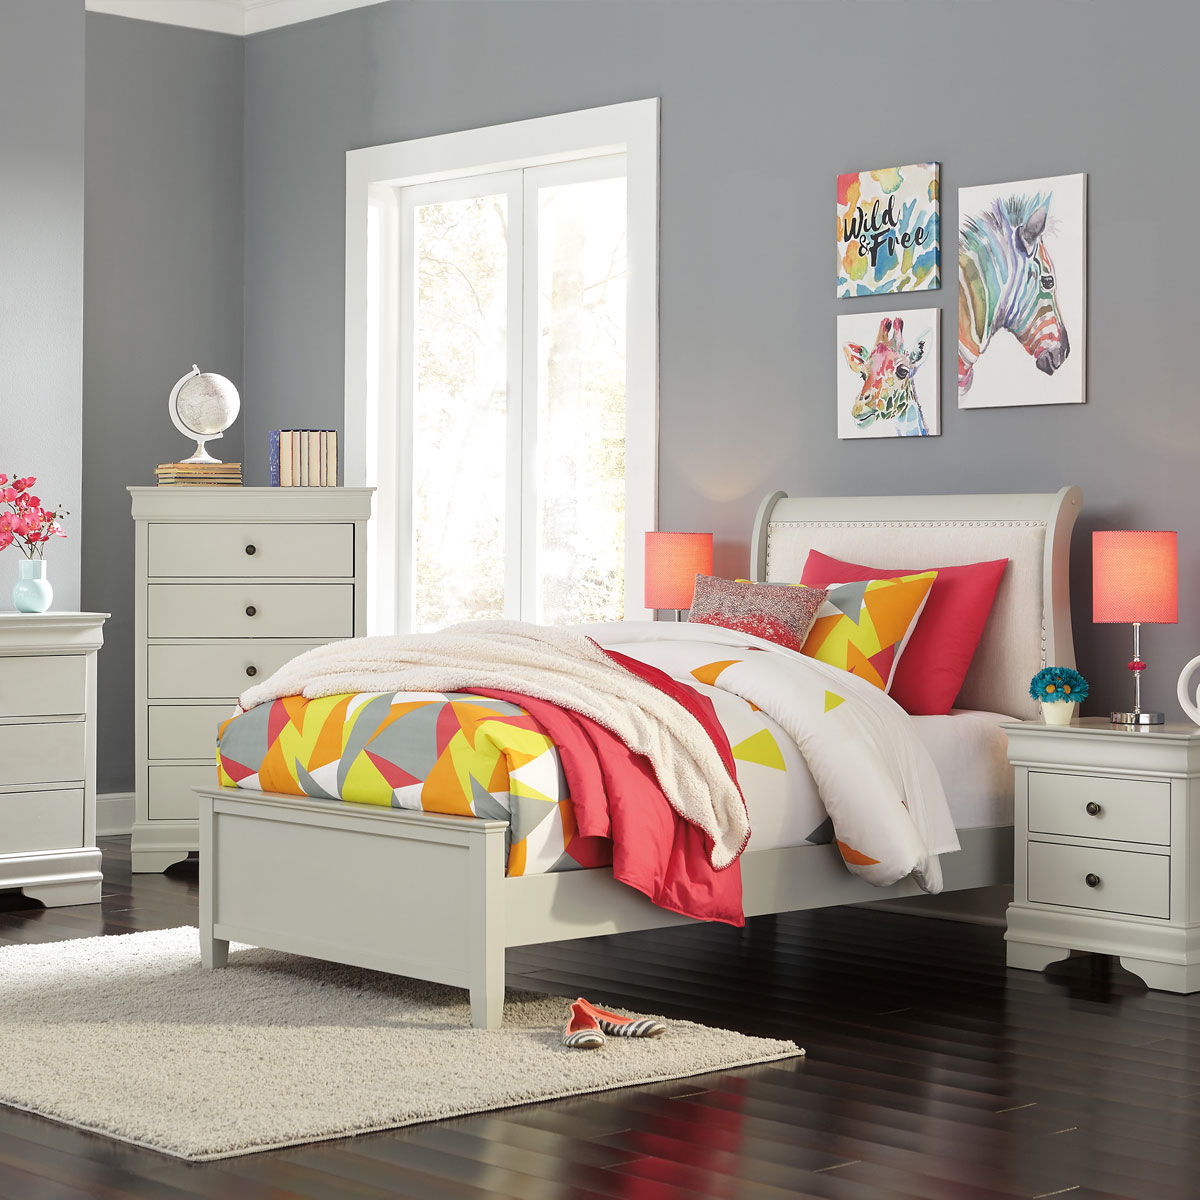 Picture of Jordana Twin Bed